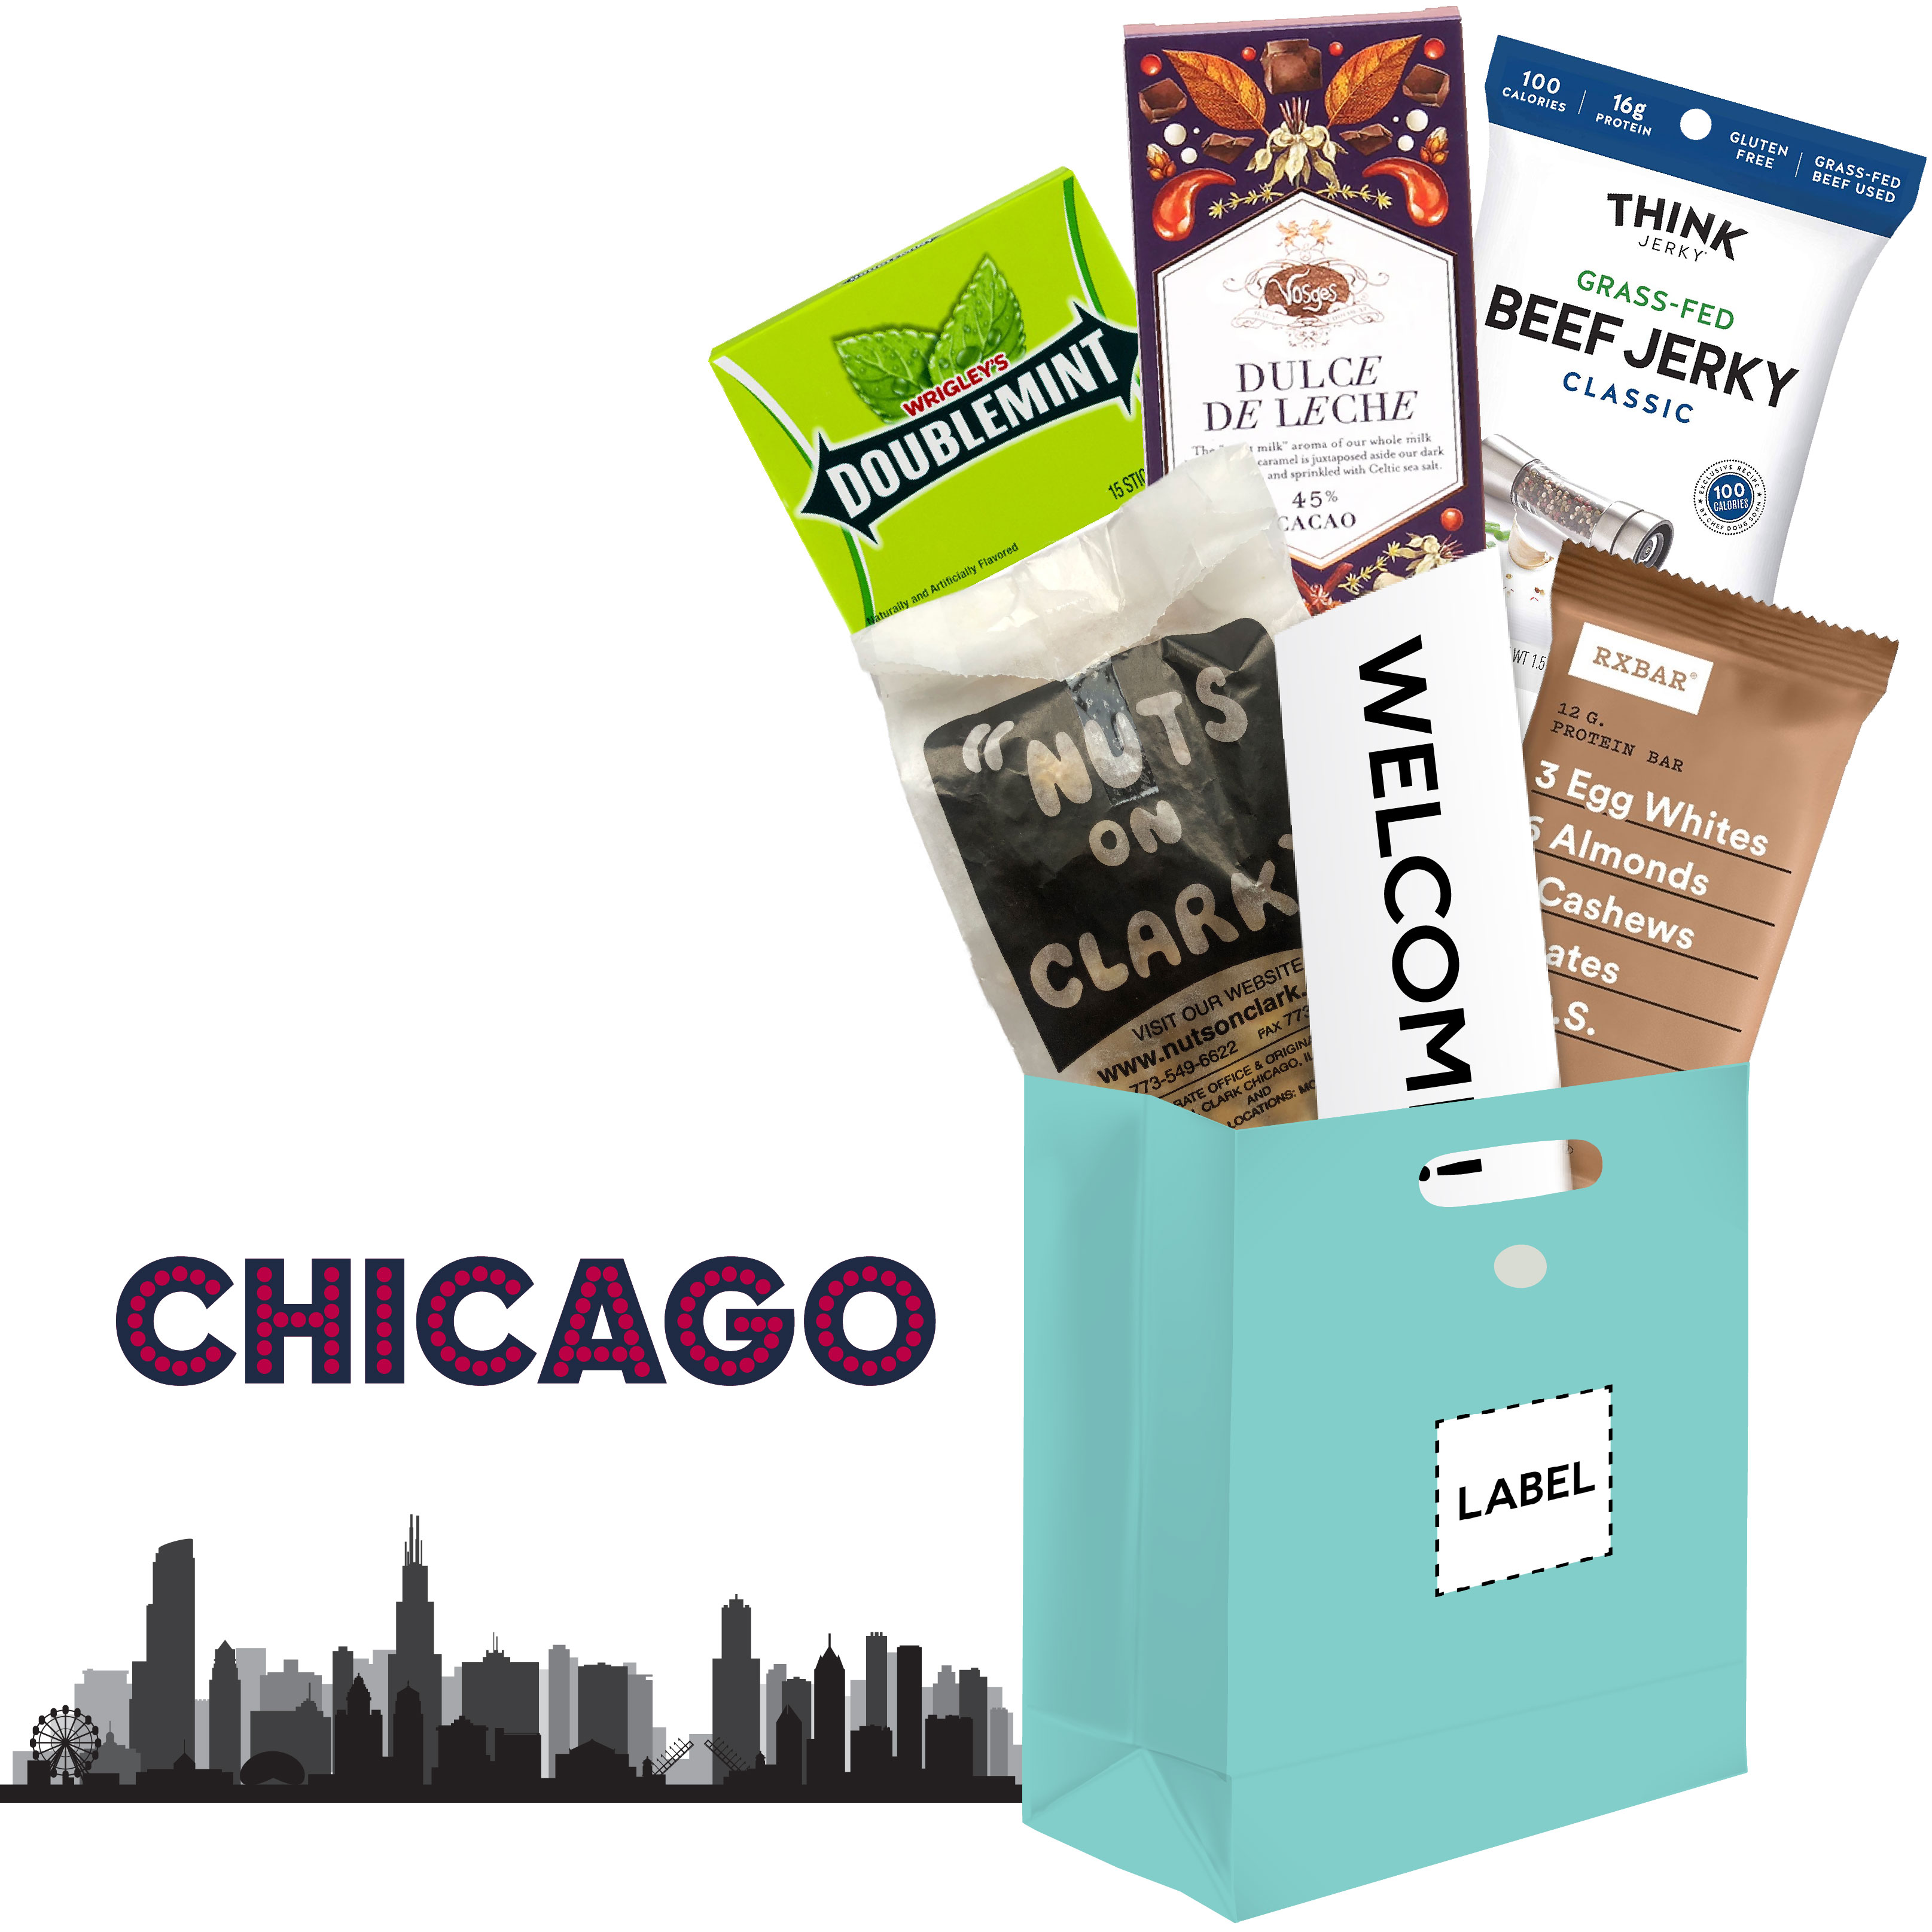 Chicago Bags